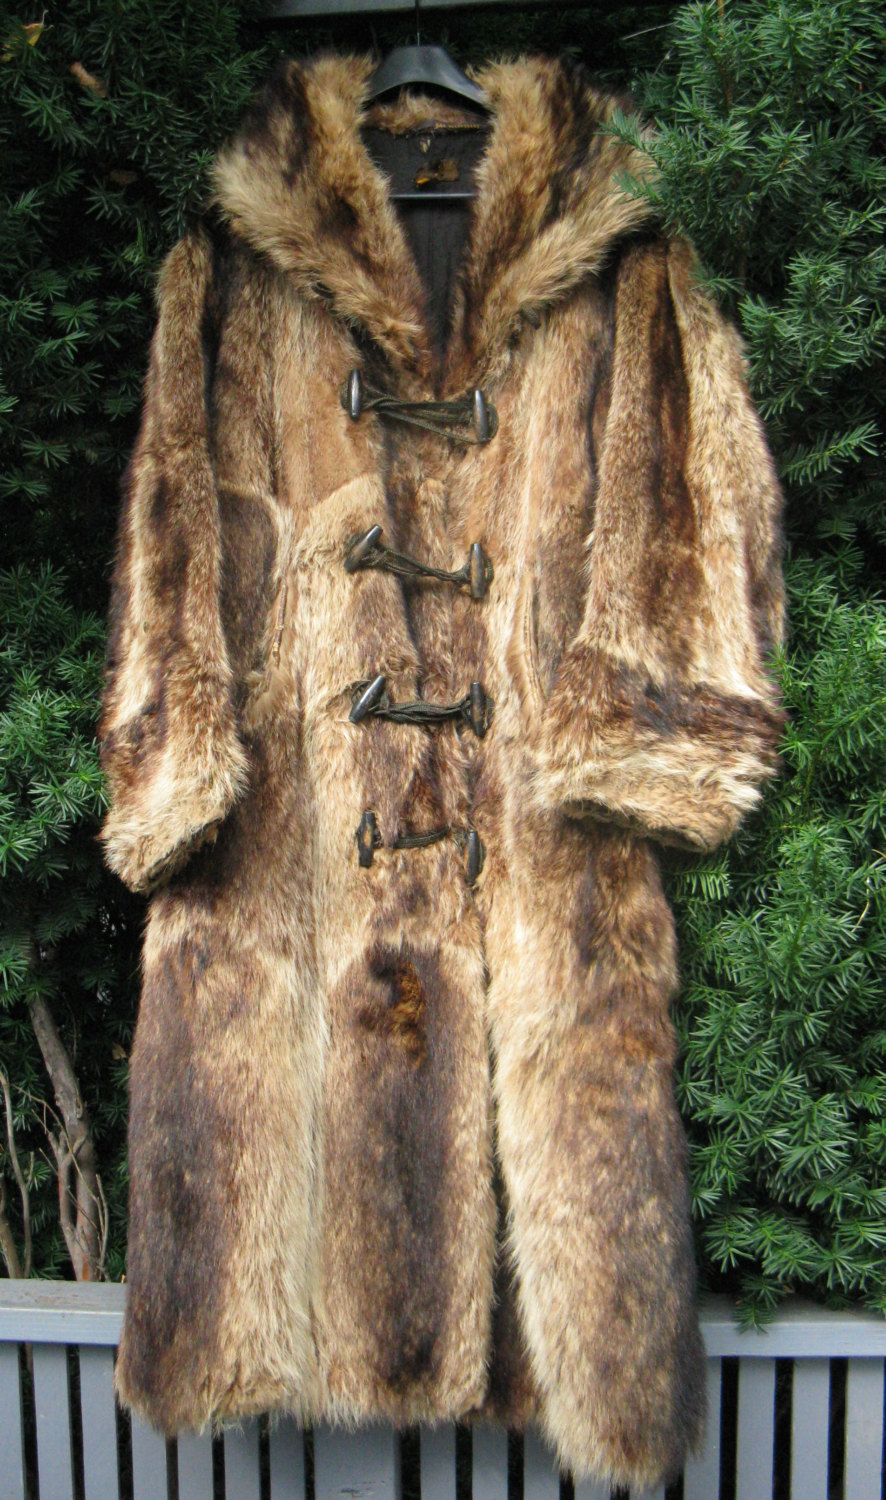 Vintage Magic - 1920s Jazz Age Ivy League Raccoon coat (Etsy)